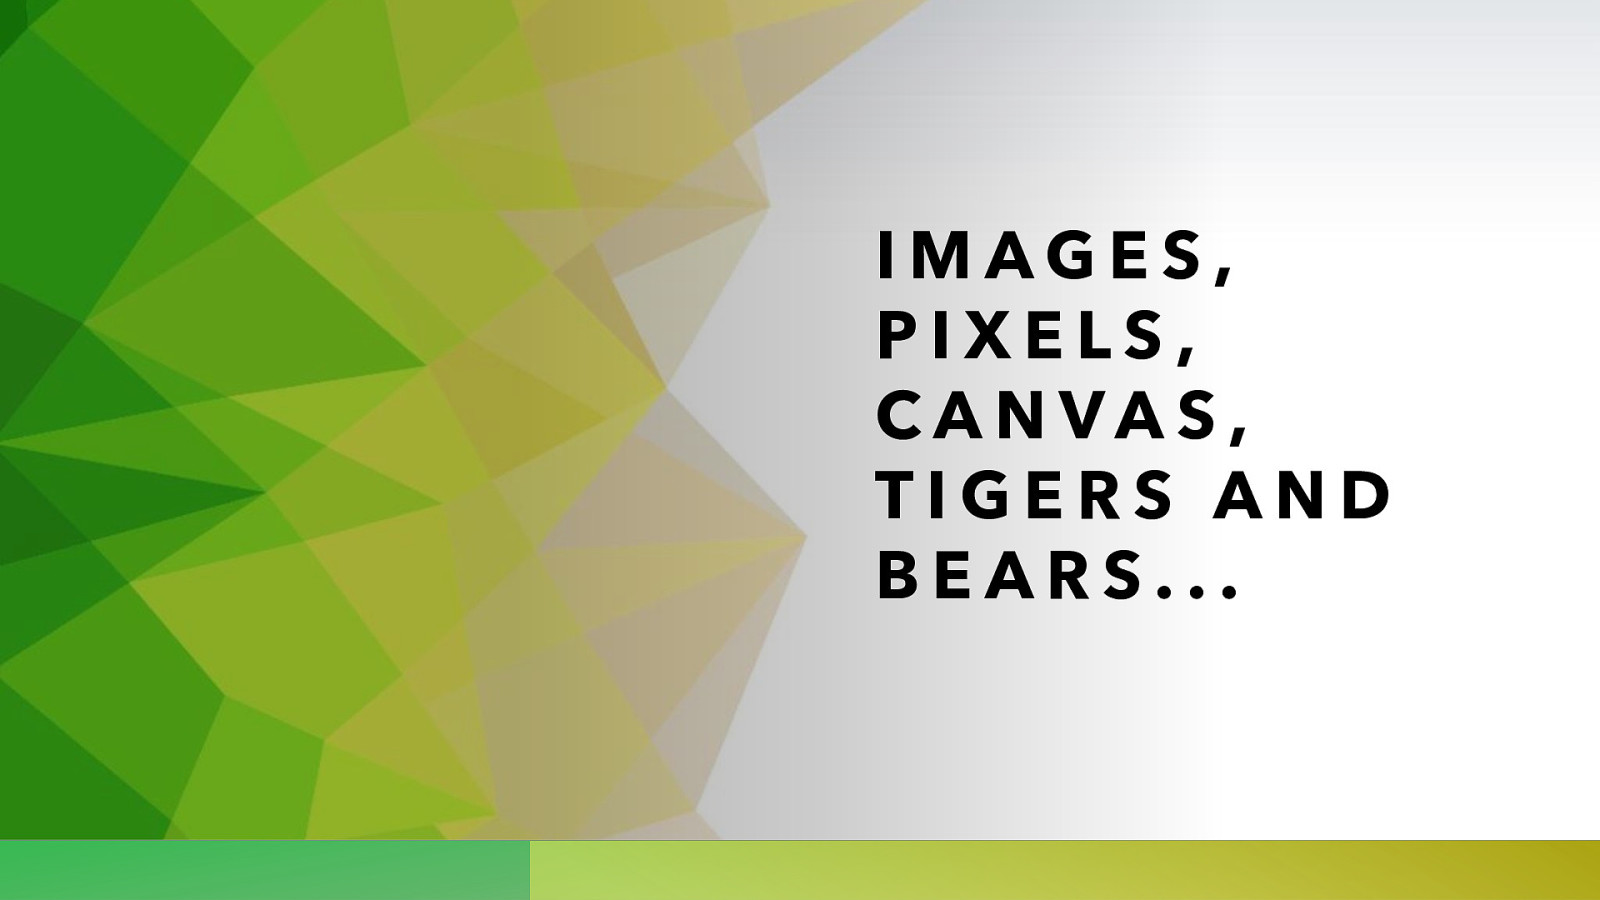 Images, pixels, canvas, tigers and bears…